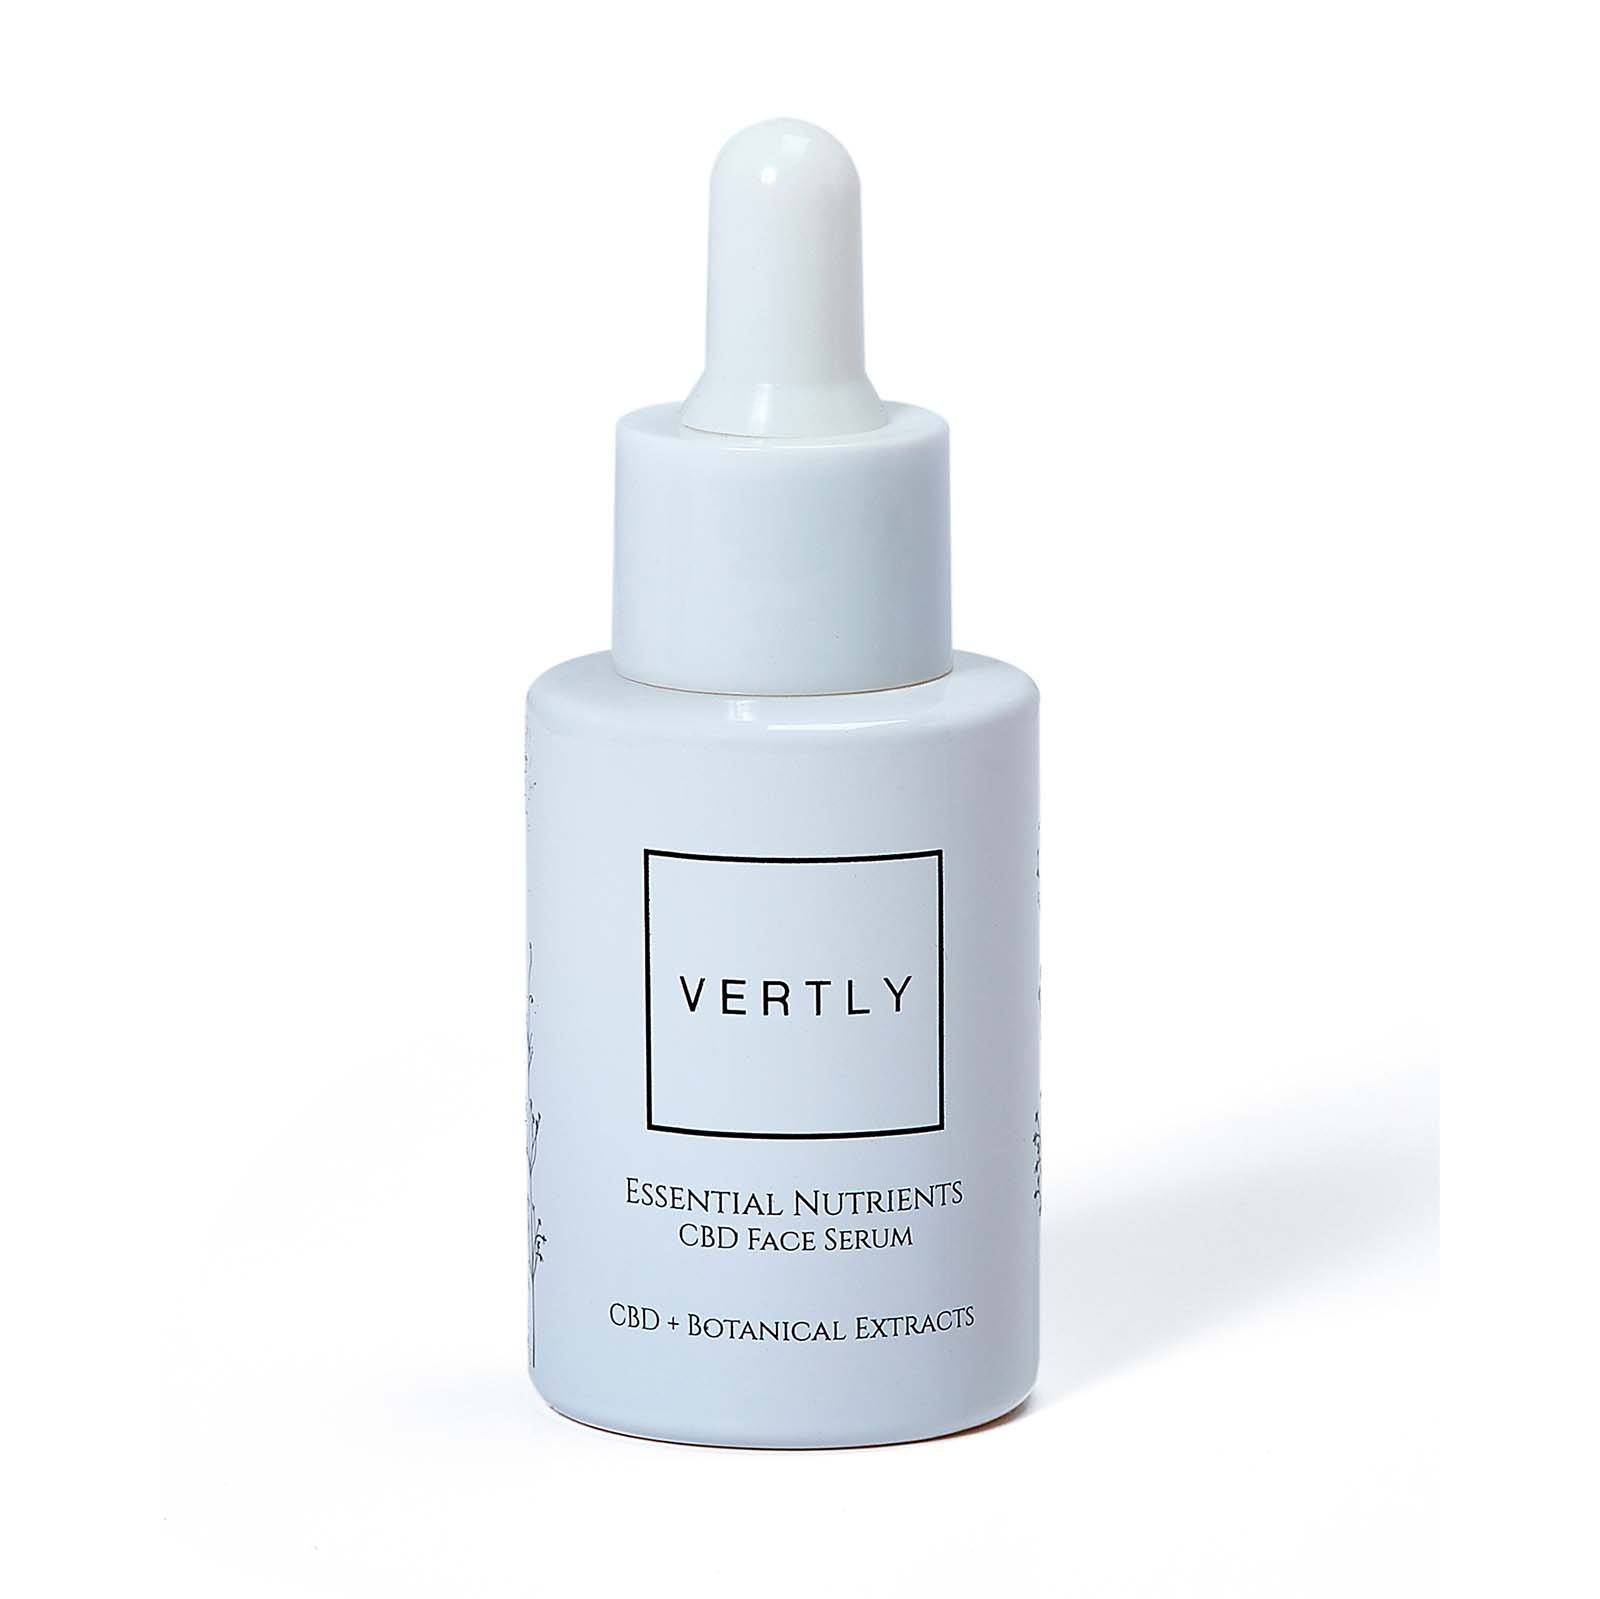 Essential Nutrients Face Serum